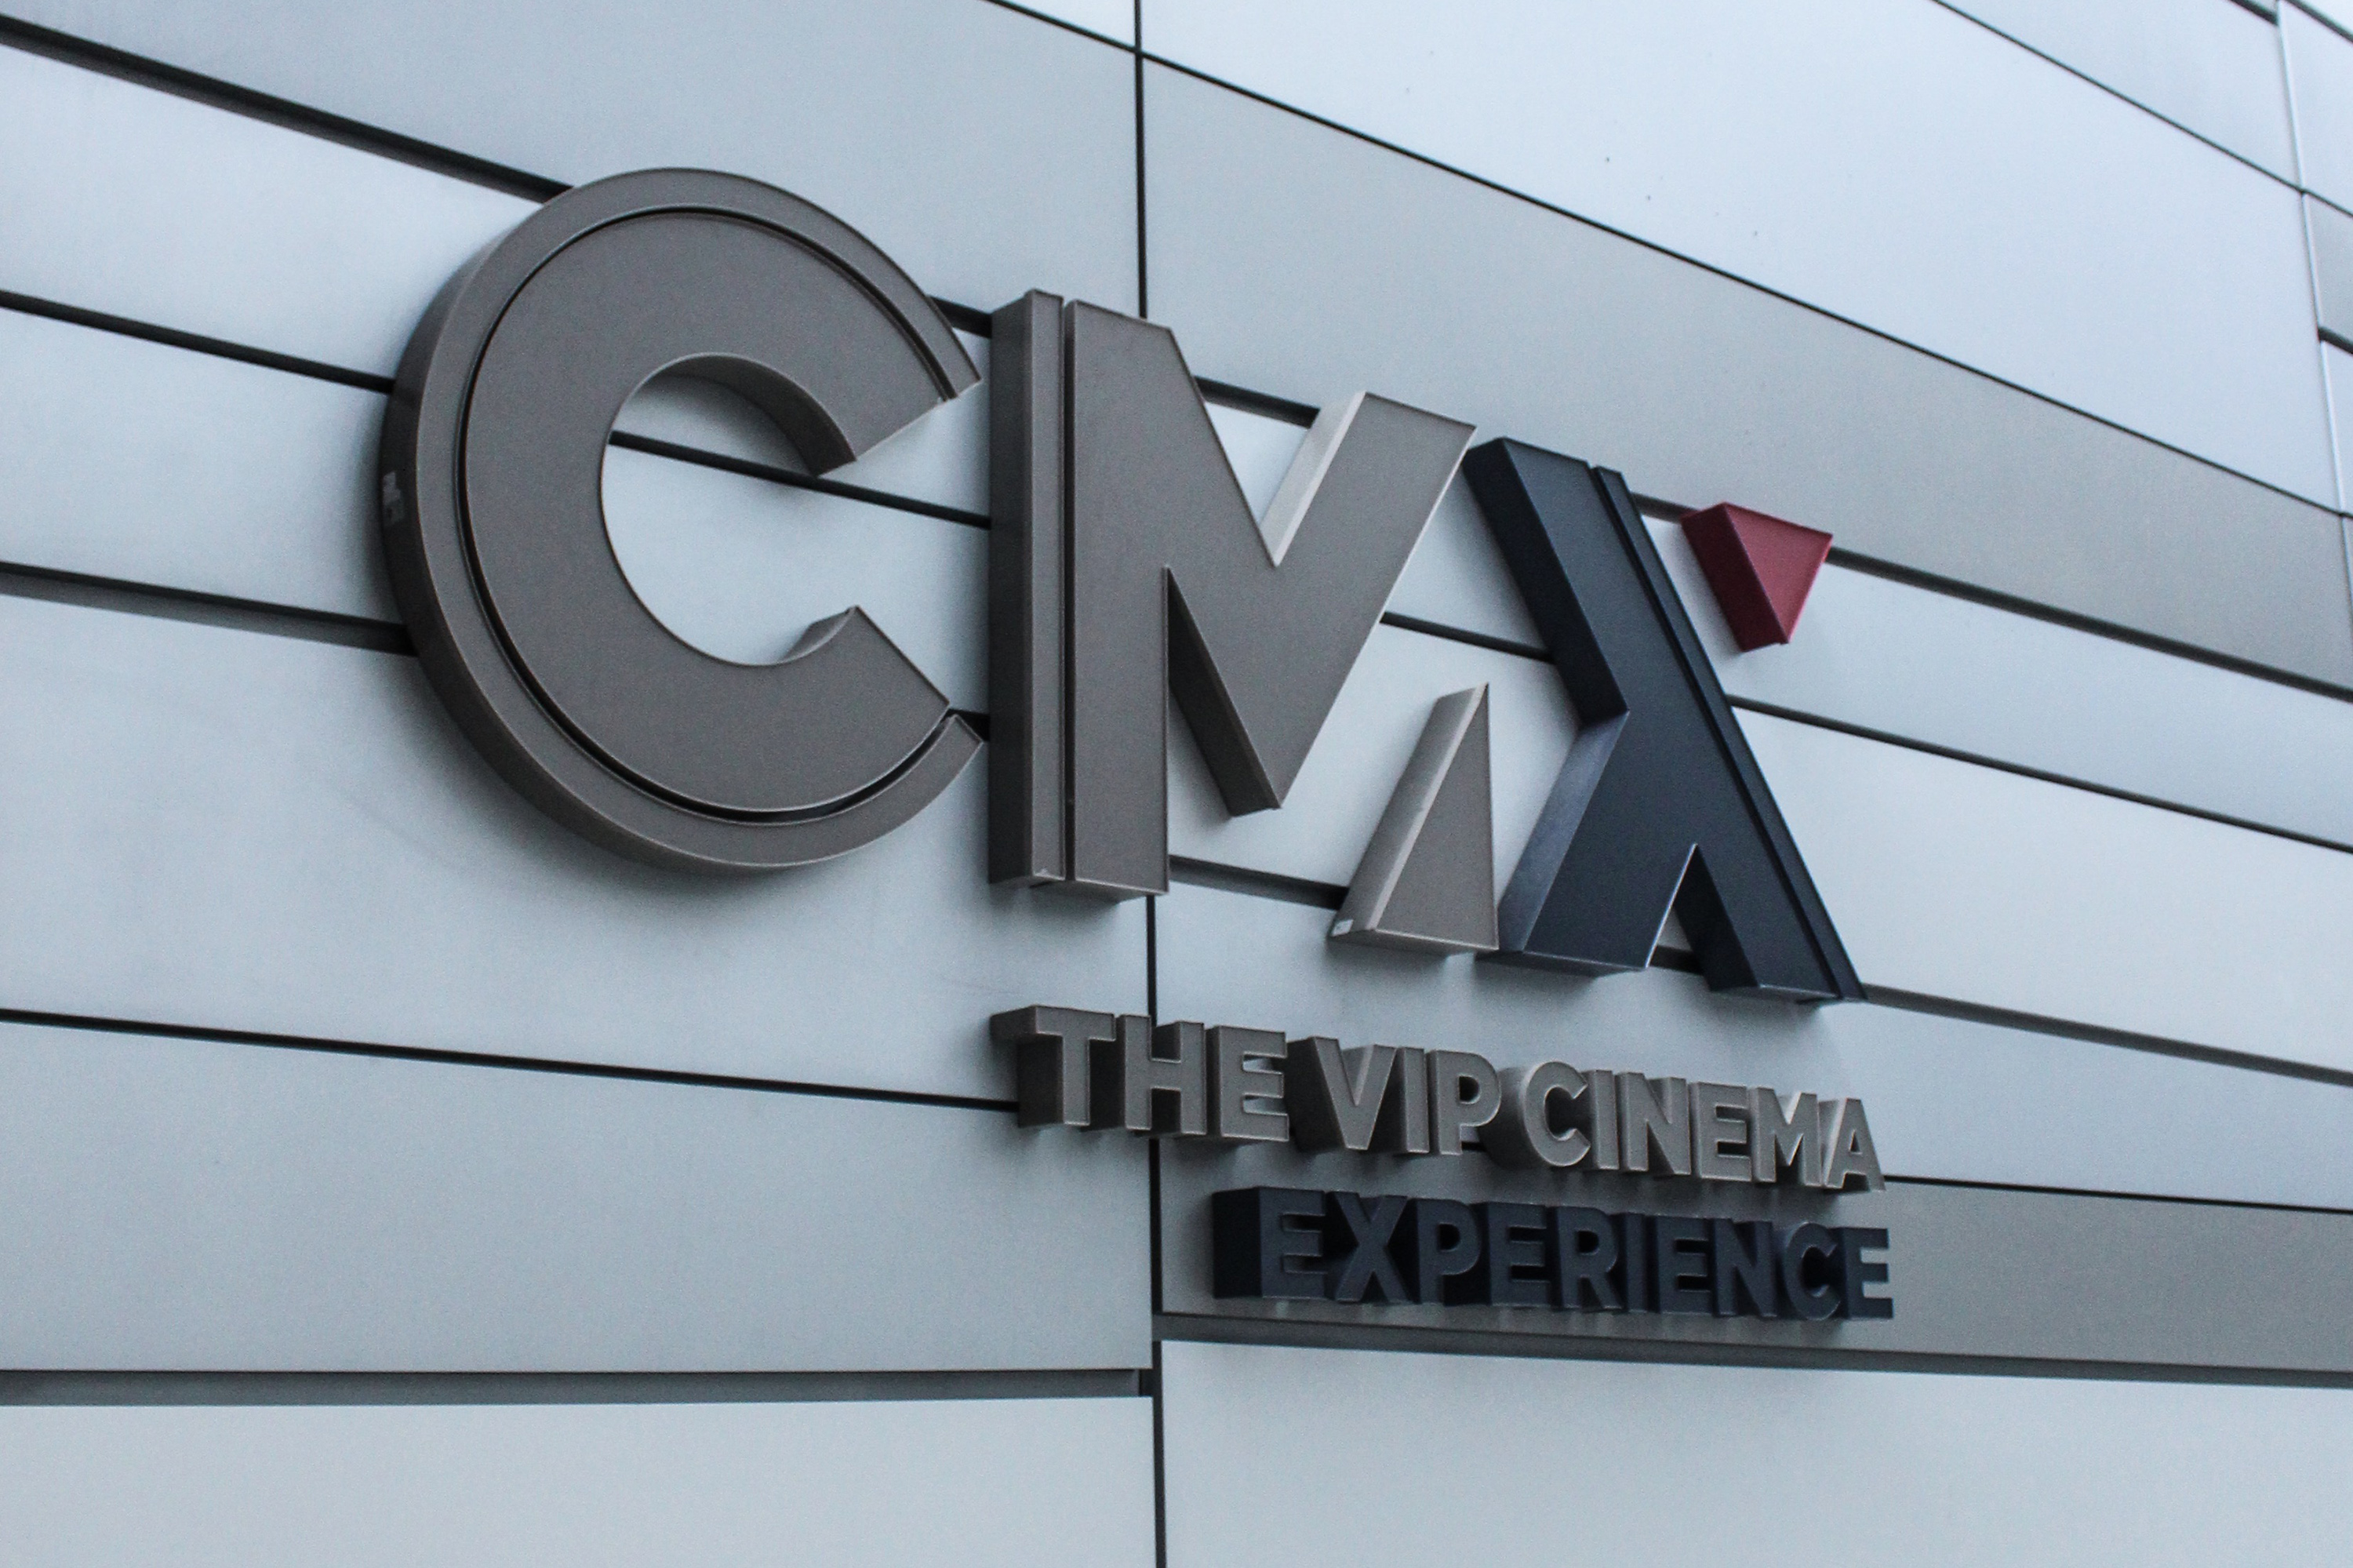 Outside the new CMX cinema in Brickell City Centre